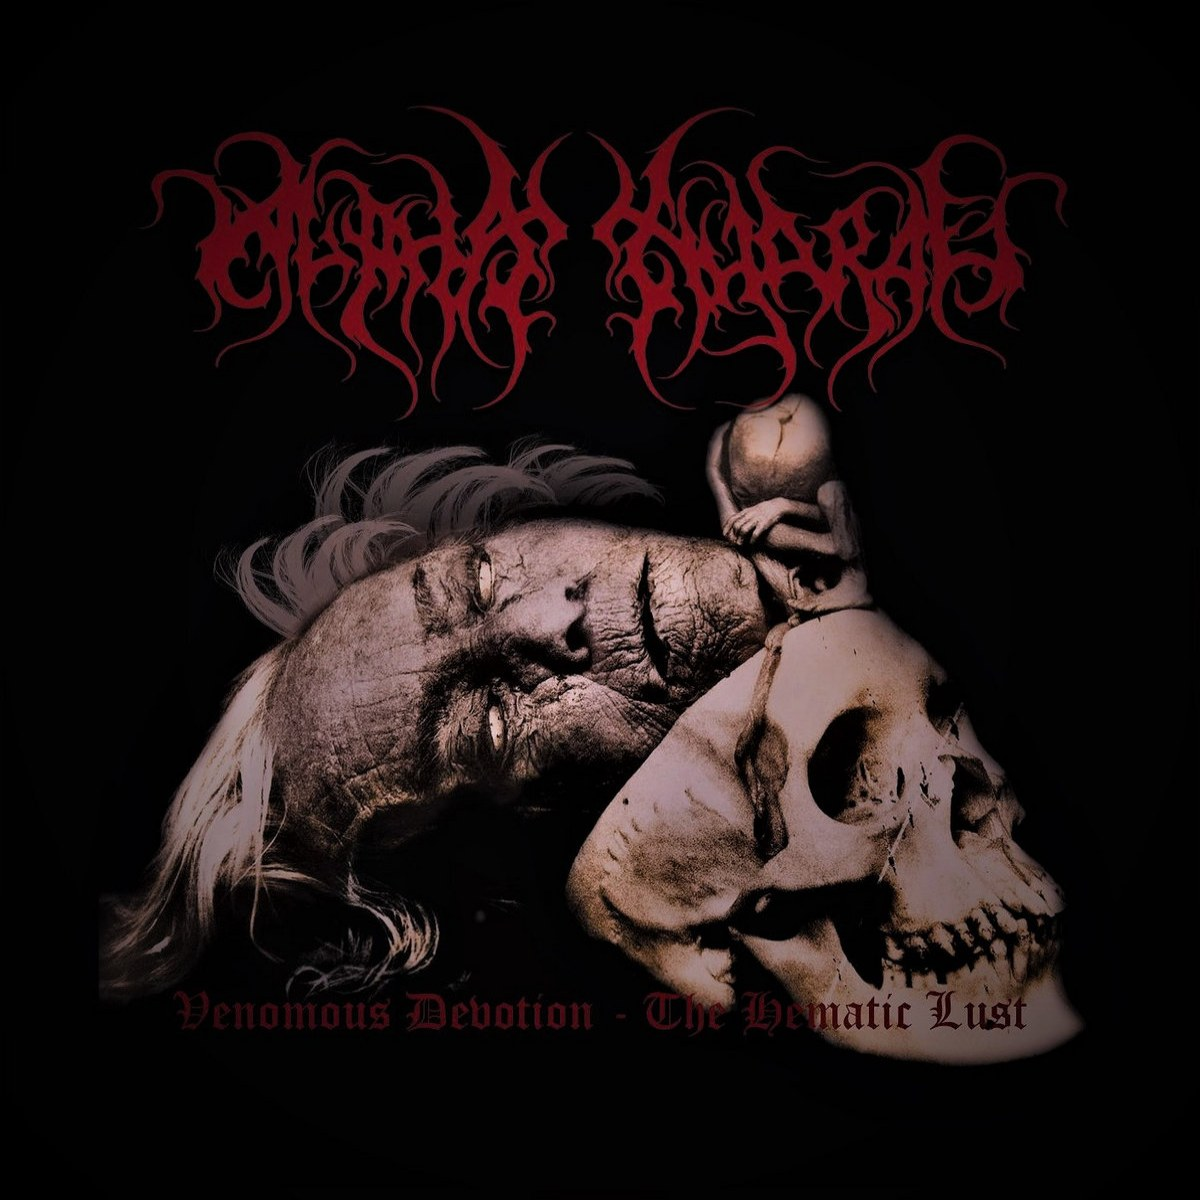 Review for Alpha Hydrae - Venomous Devotion - The Hematic Lust